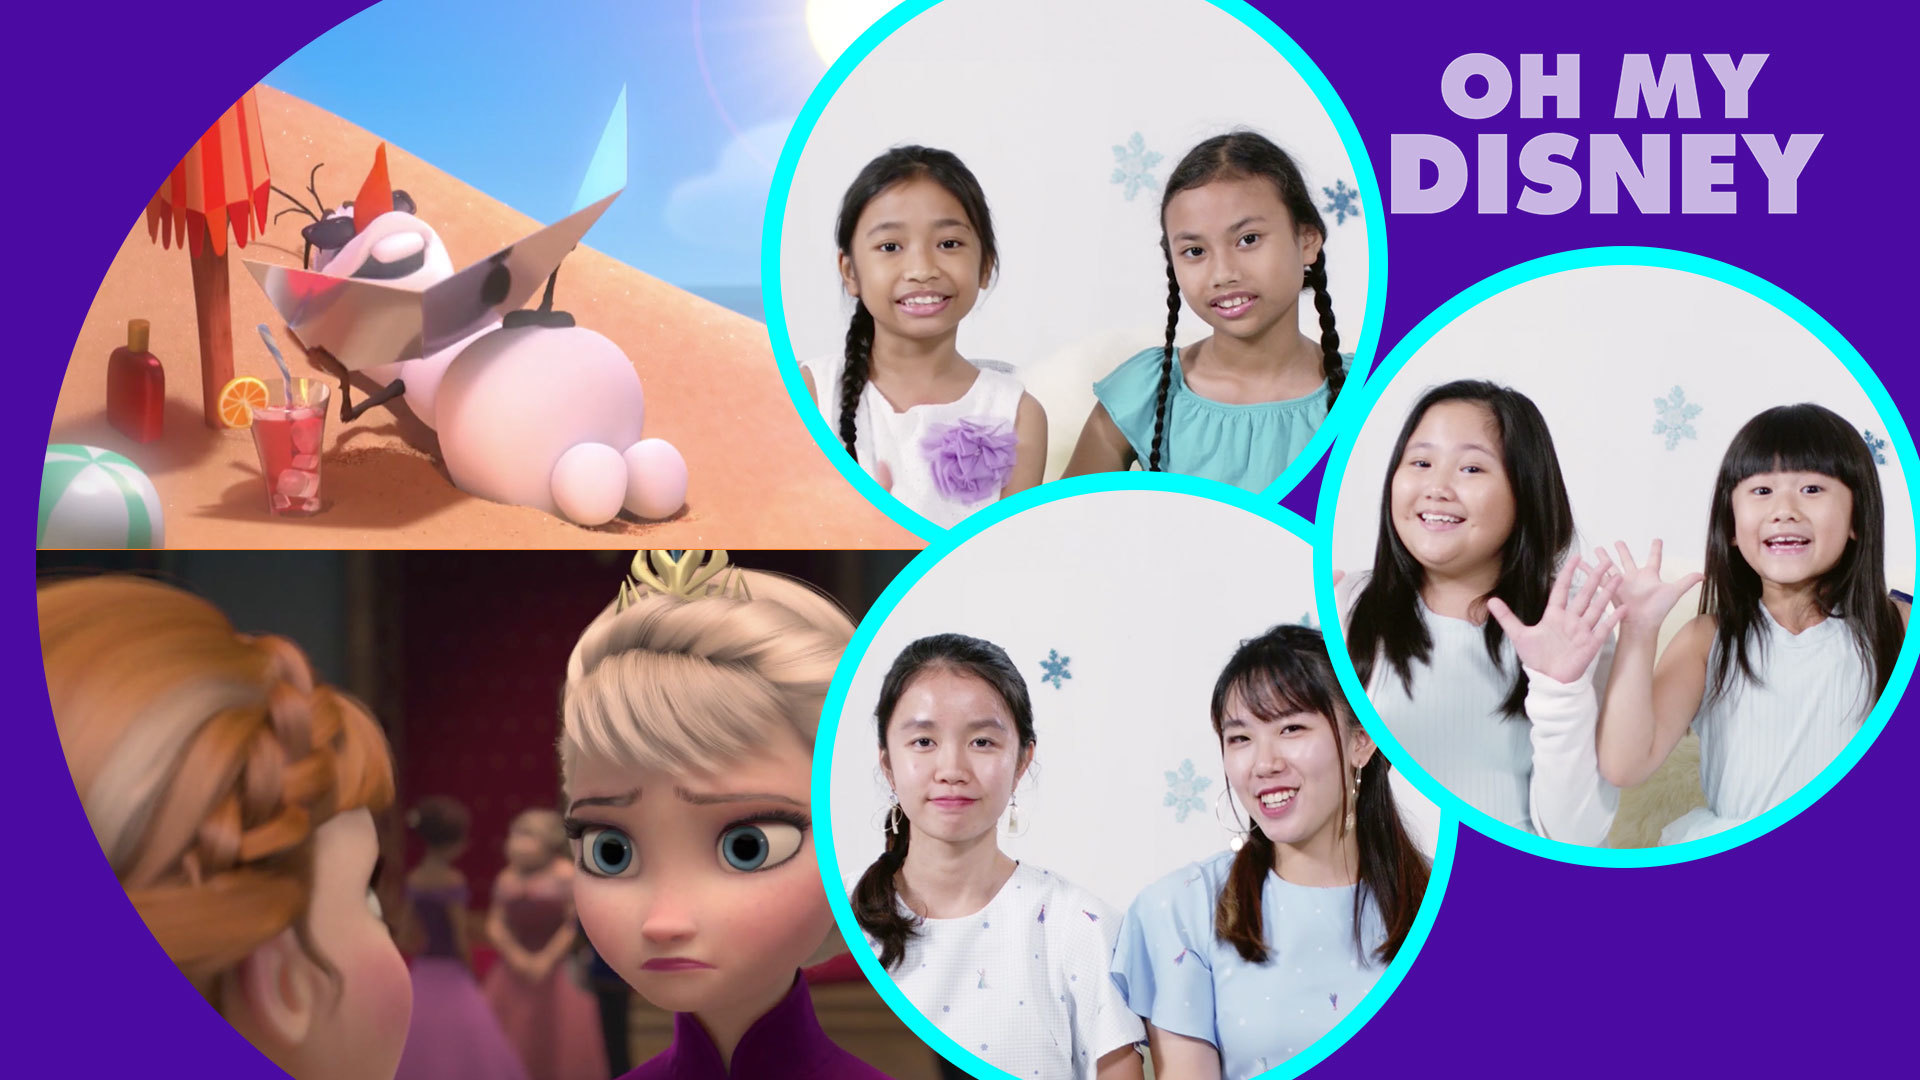 Disney's Frozen As Told By Sisters – To Get You Ready For Disney's Frozen 2!